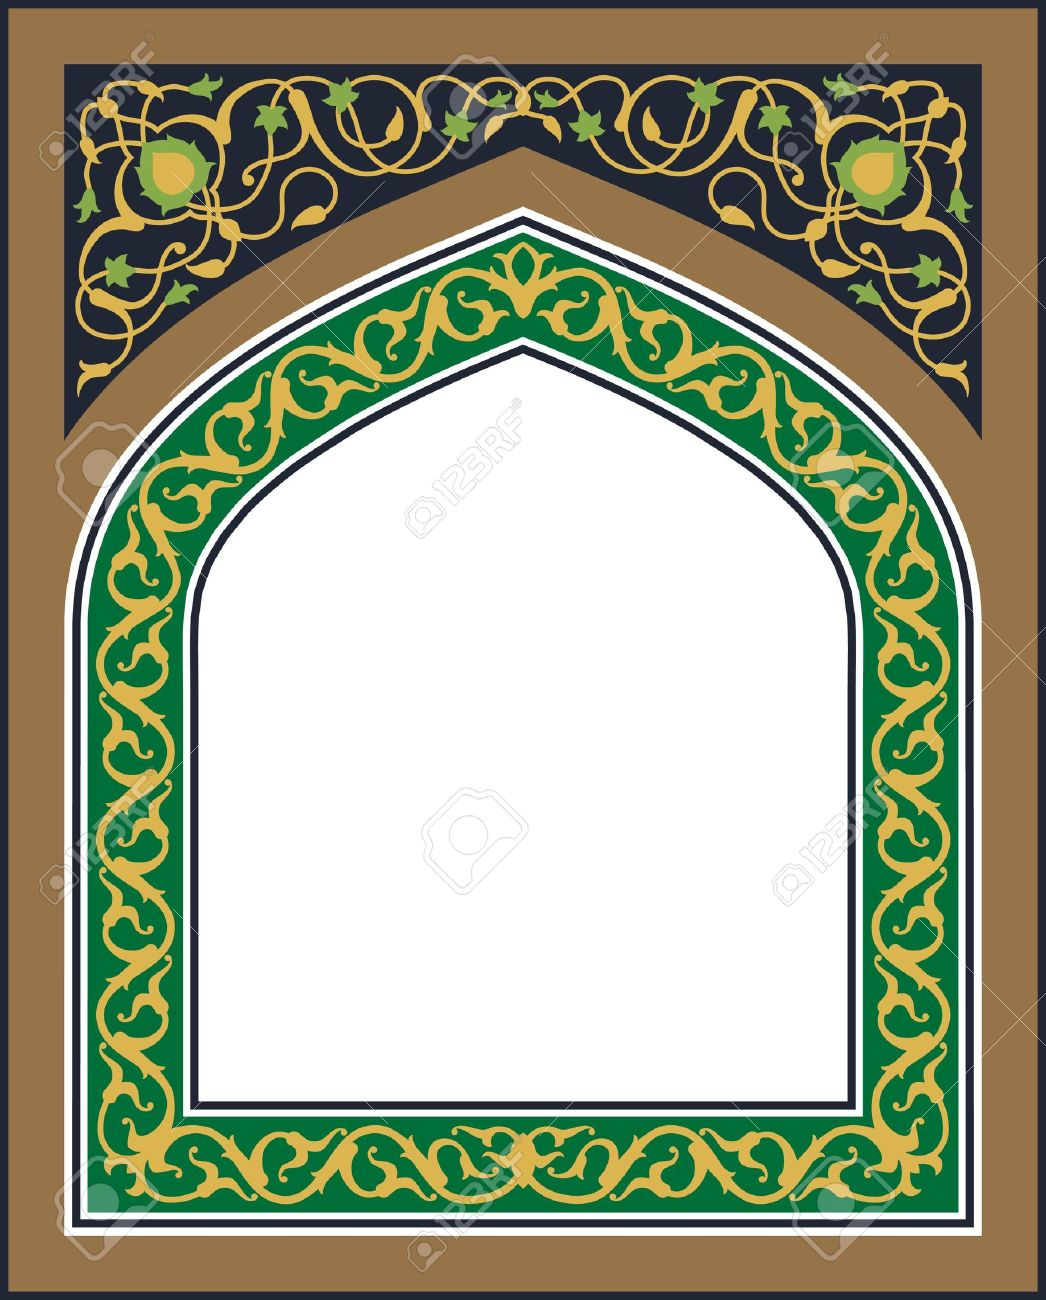 Traditional Arabic Frame Royalty Free Cliparts, Vectors, And Stock ...